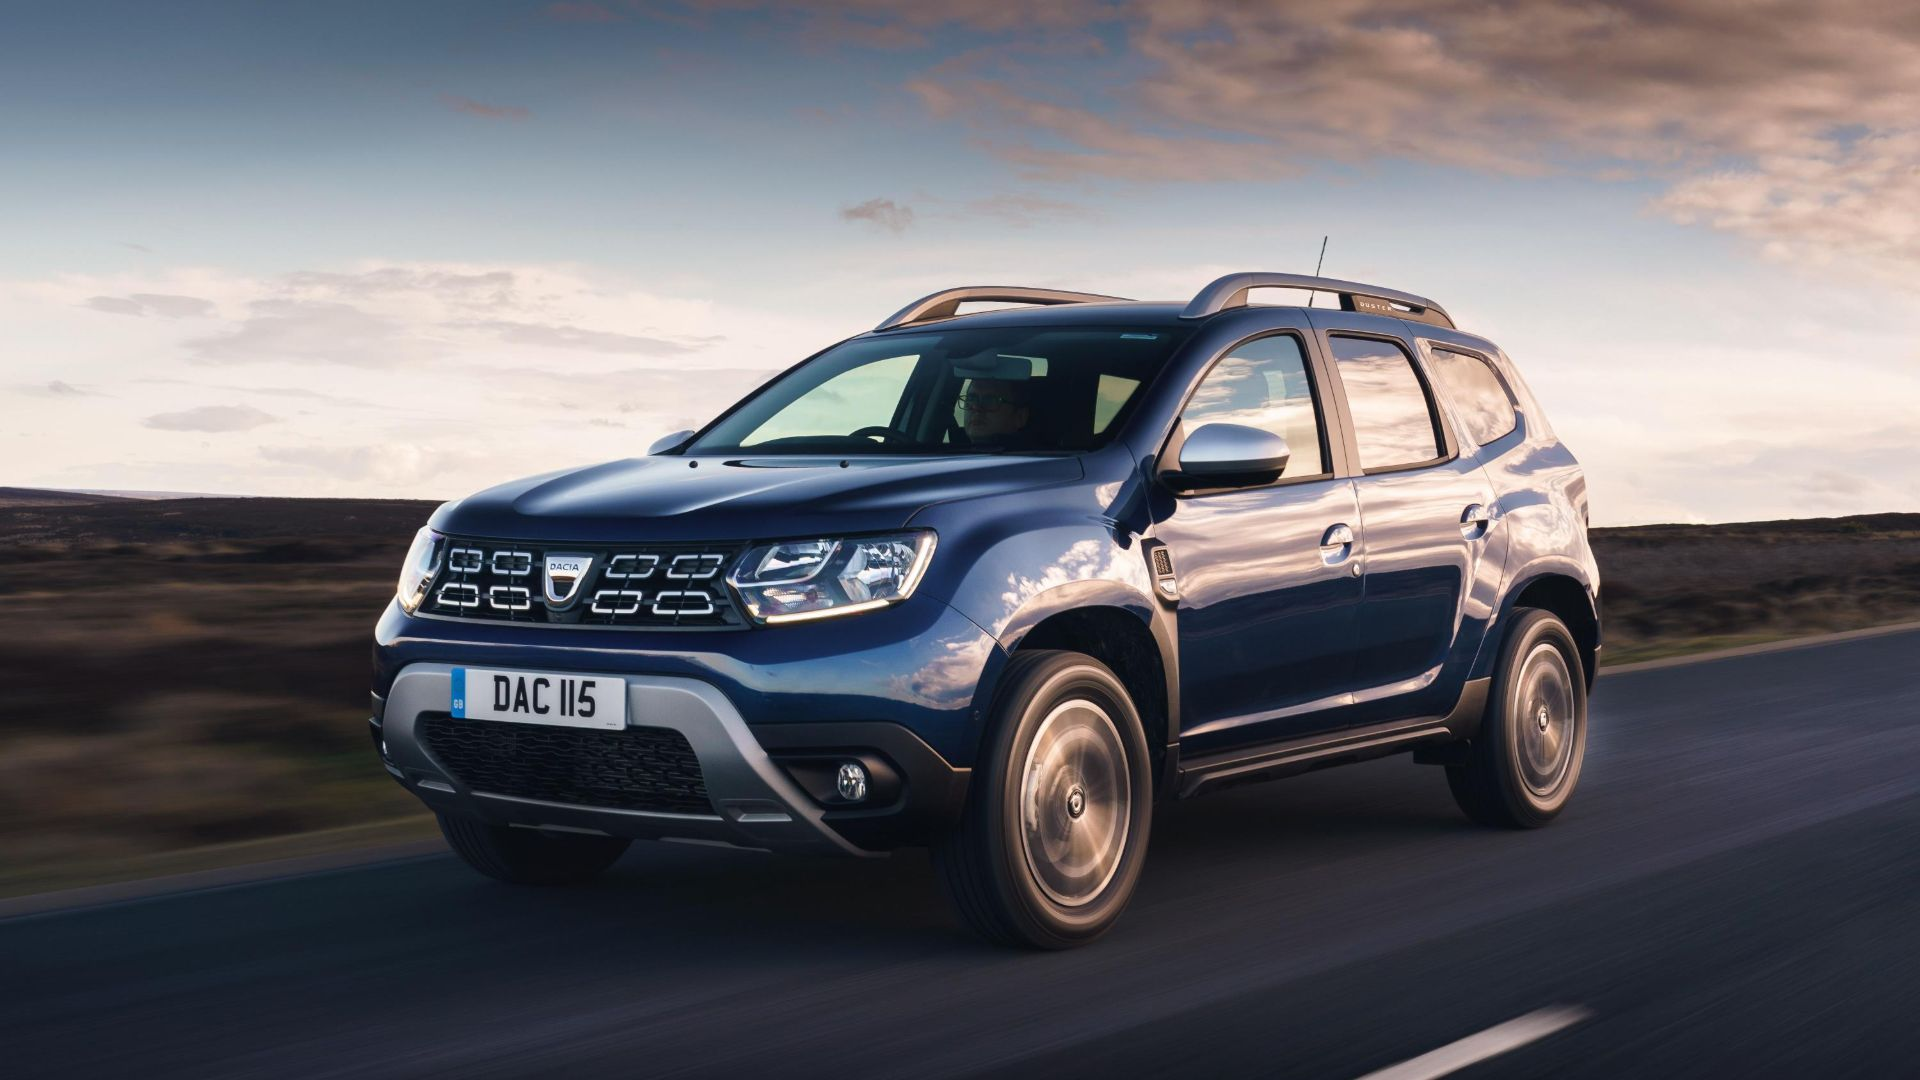 Dacia brings back LPG to the UK